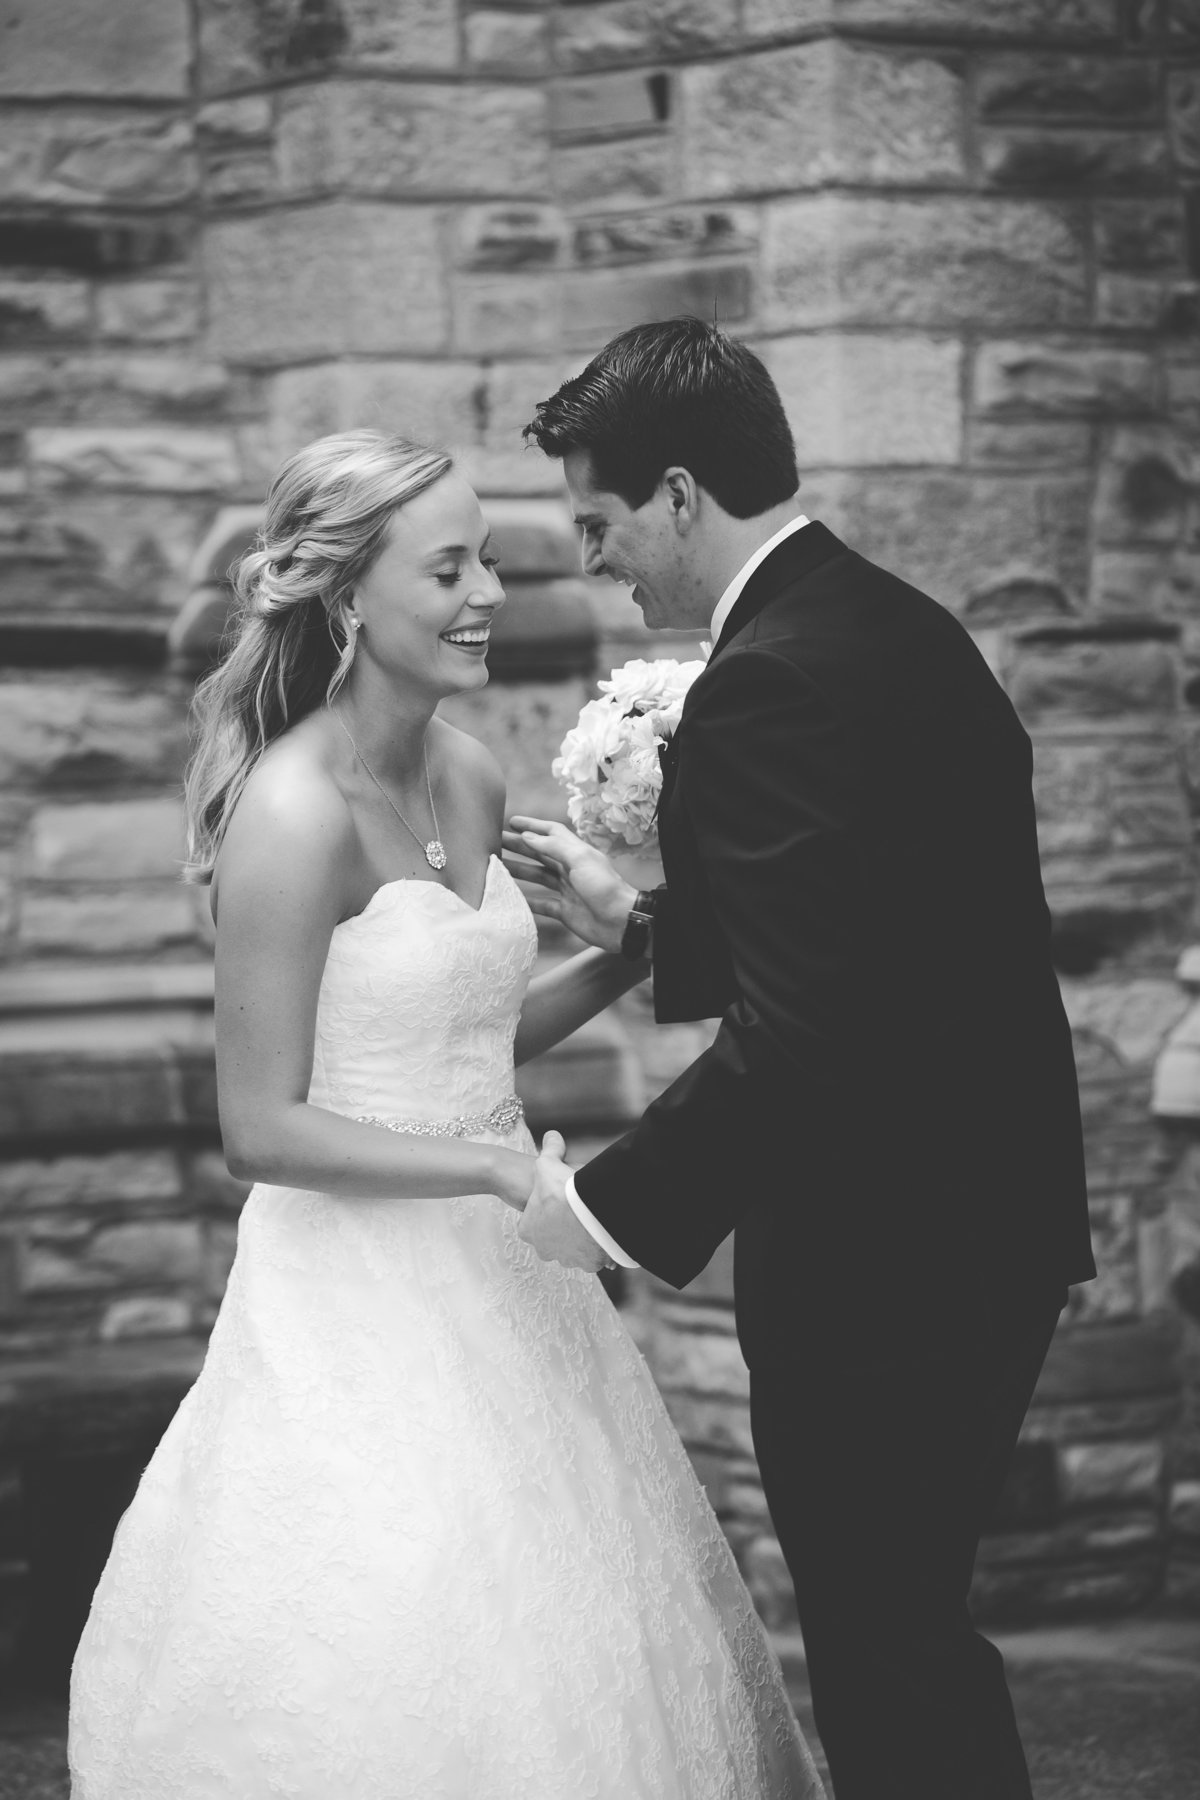 Chapel Wedding - Scaritt Bennett - Nashville Bride - Nashville Brides - Nashville Wedding - Nashvilel Weddings - Southern Bride - Traditional Bride048